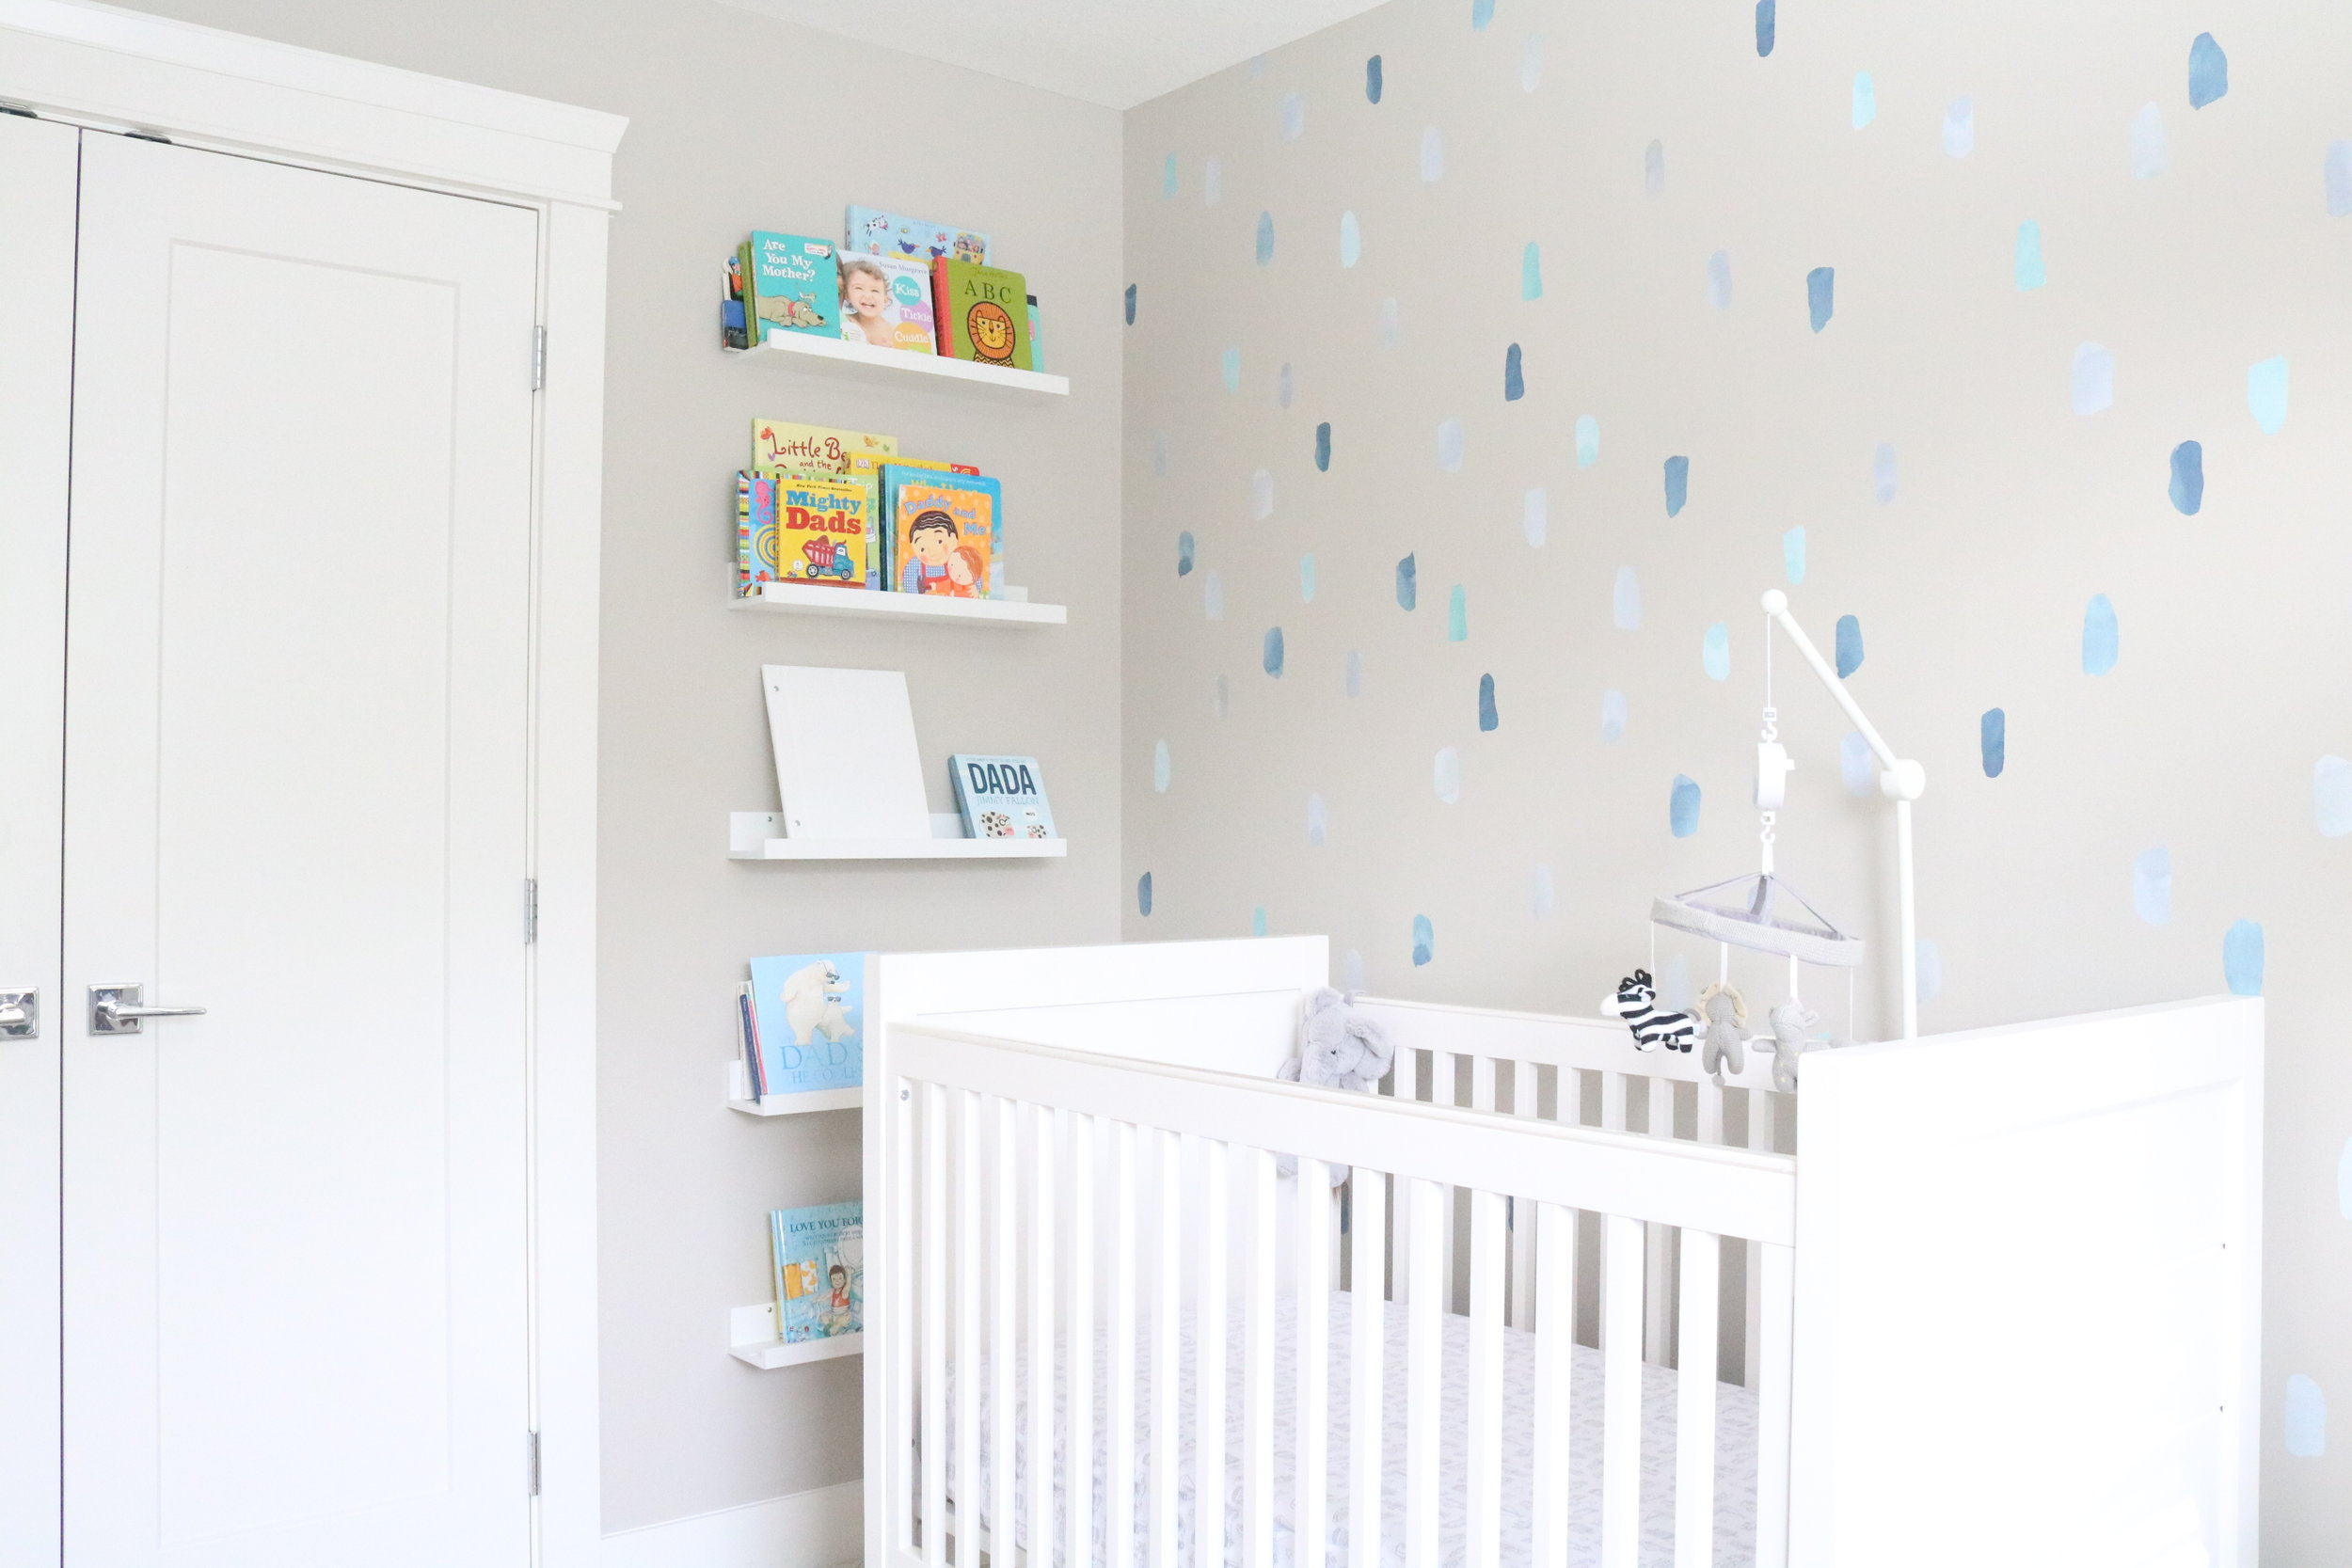 A Beginner's Guide to Designing a Nursery